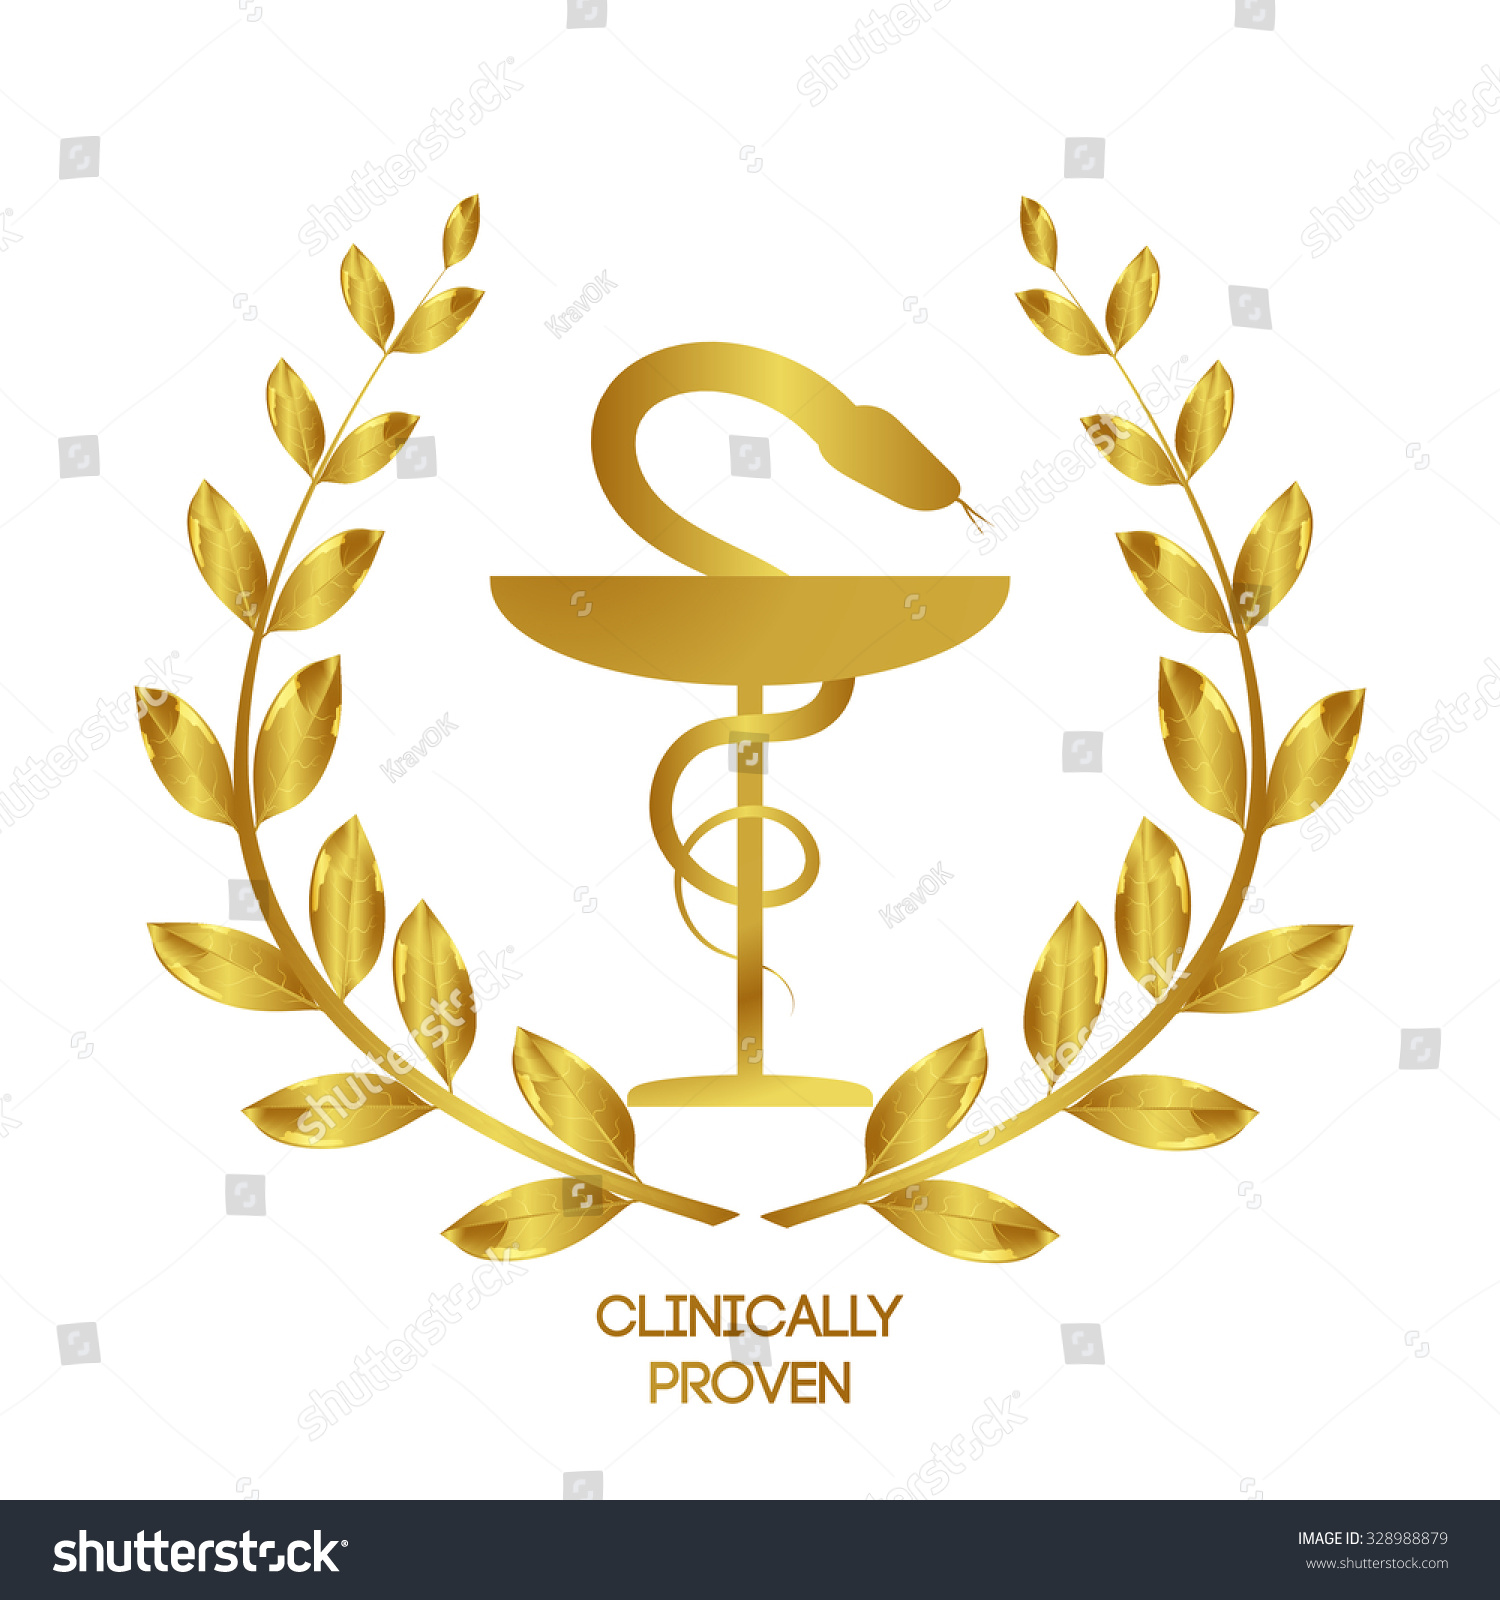 Clinically proven pharmacy icon caduceus symbol stock vector clinically proven pharmacy icon caduceus symbol bowl with a snake medicine symbol biocorpaavc